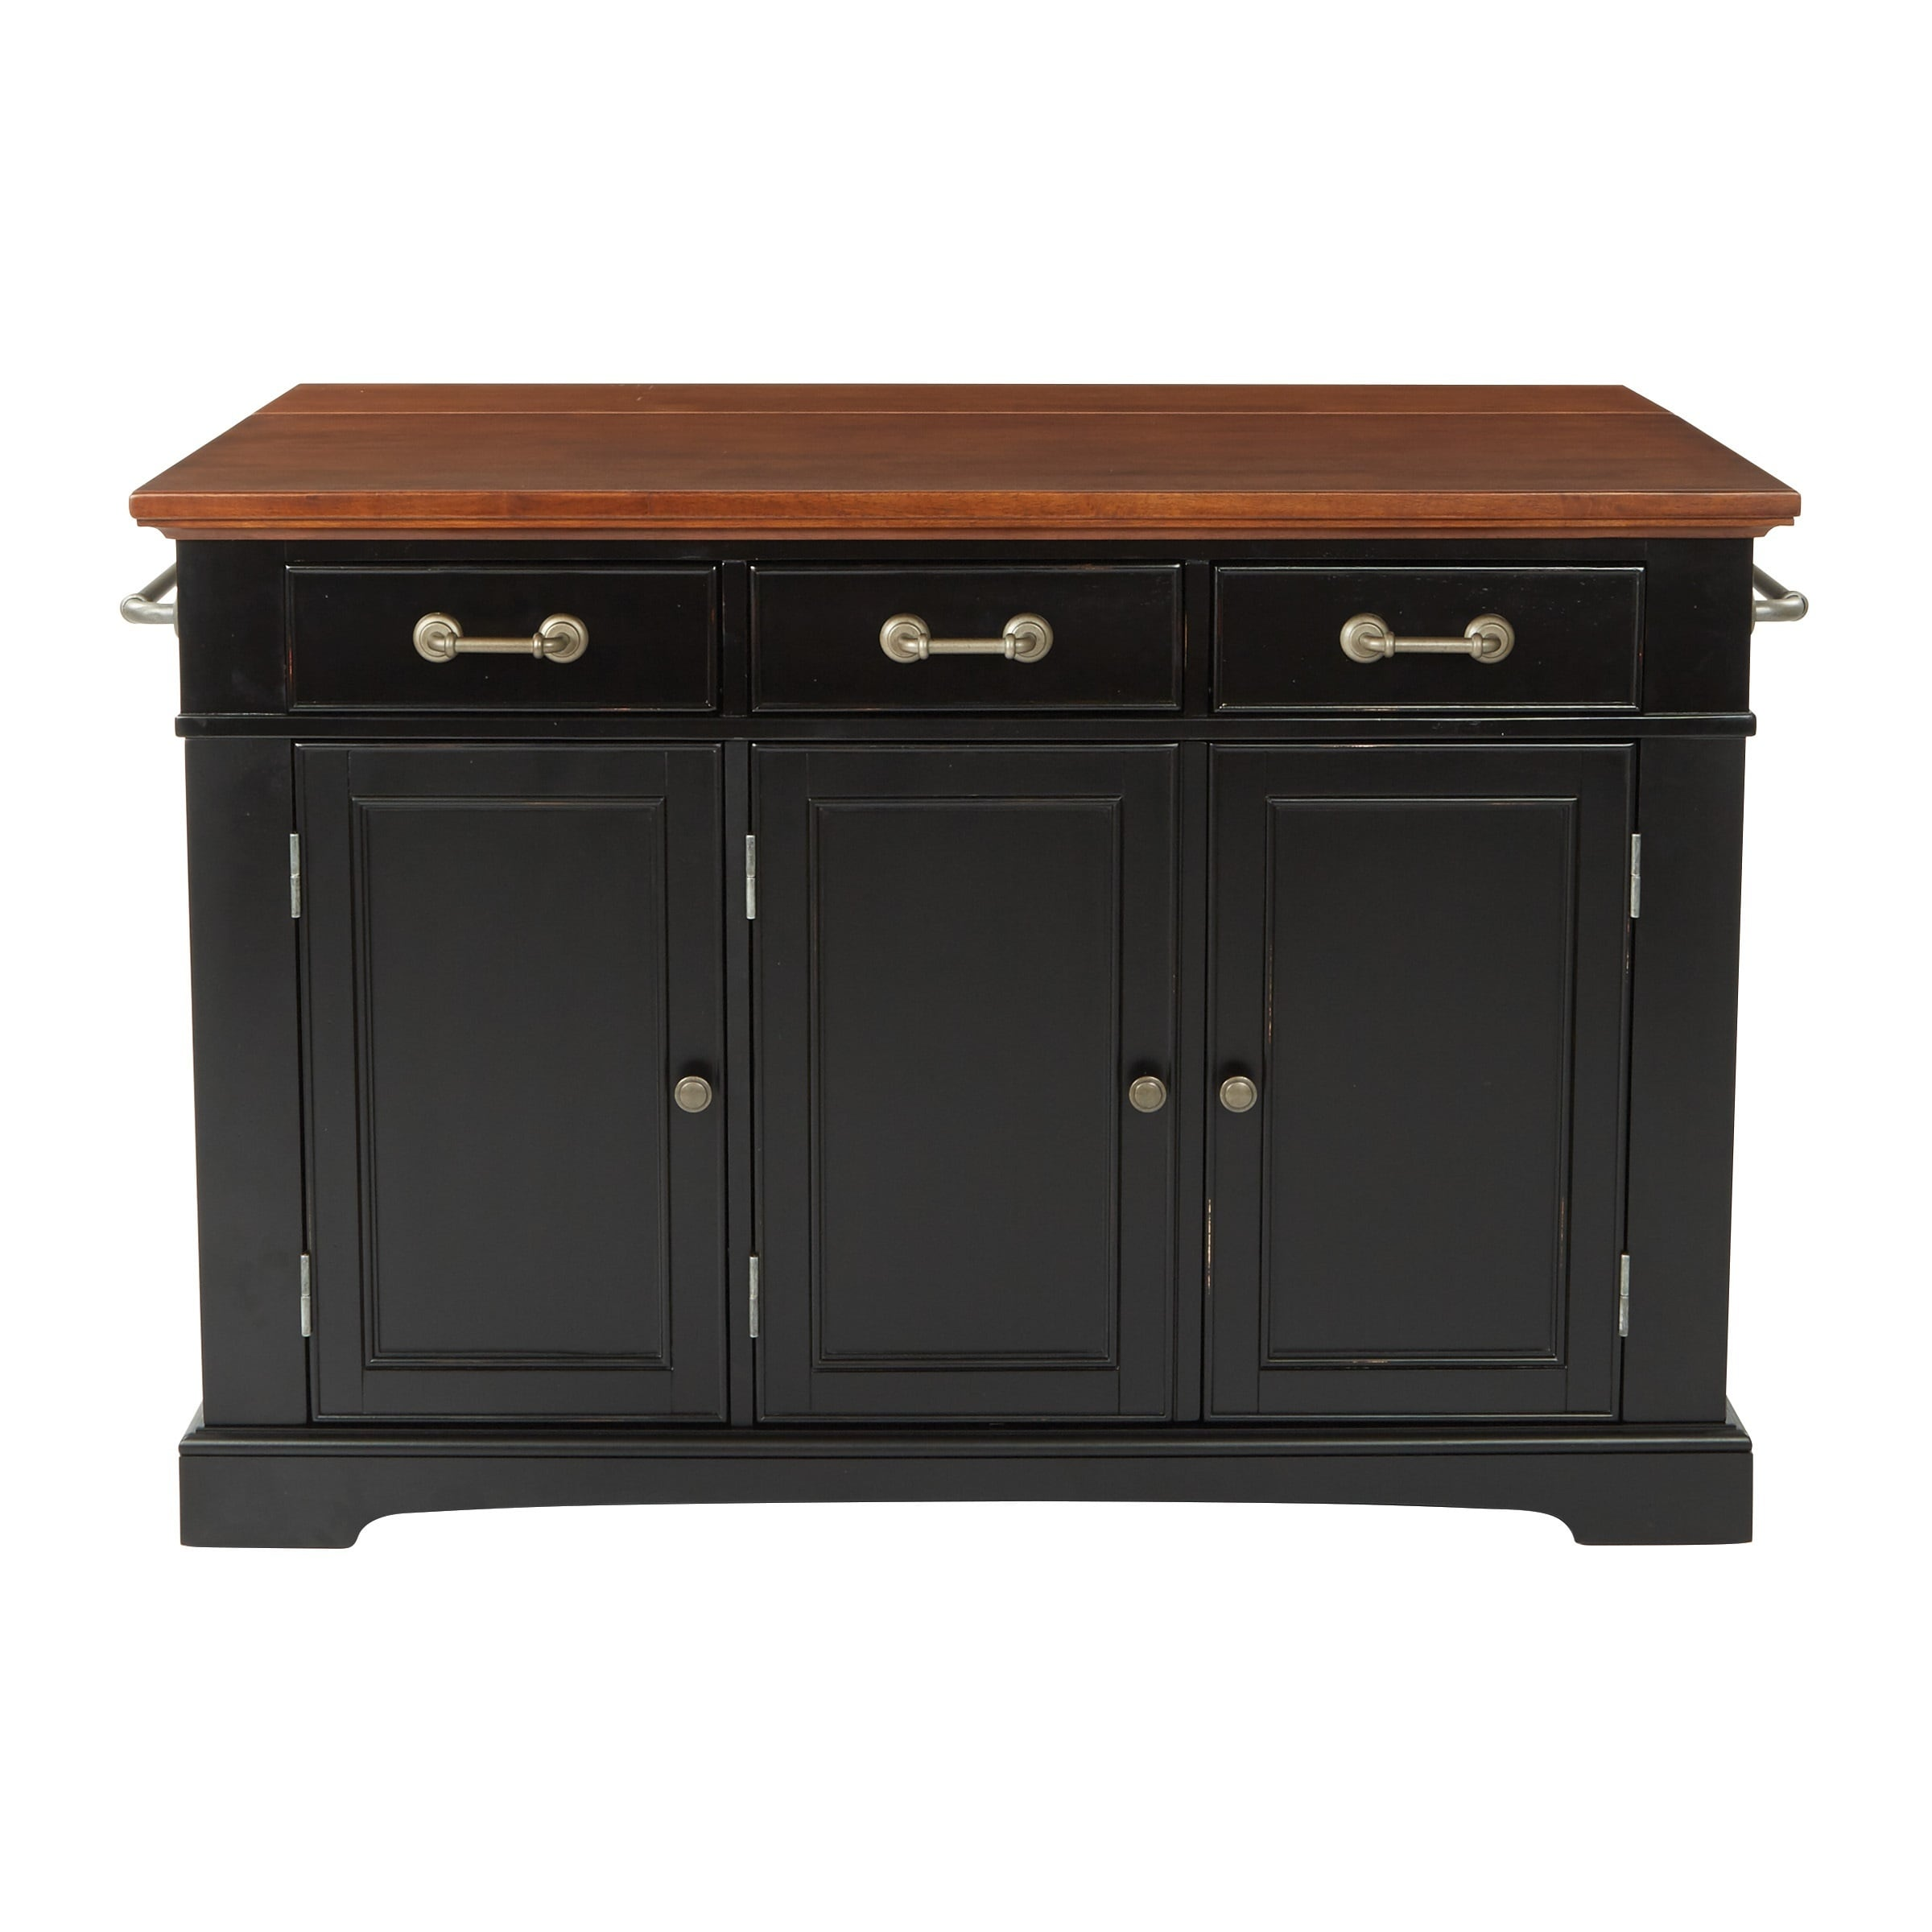 Shop osp home furnishings country kitchen large kitchen island in black distressed finish with vintage oak top free shipping today overstock com